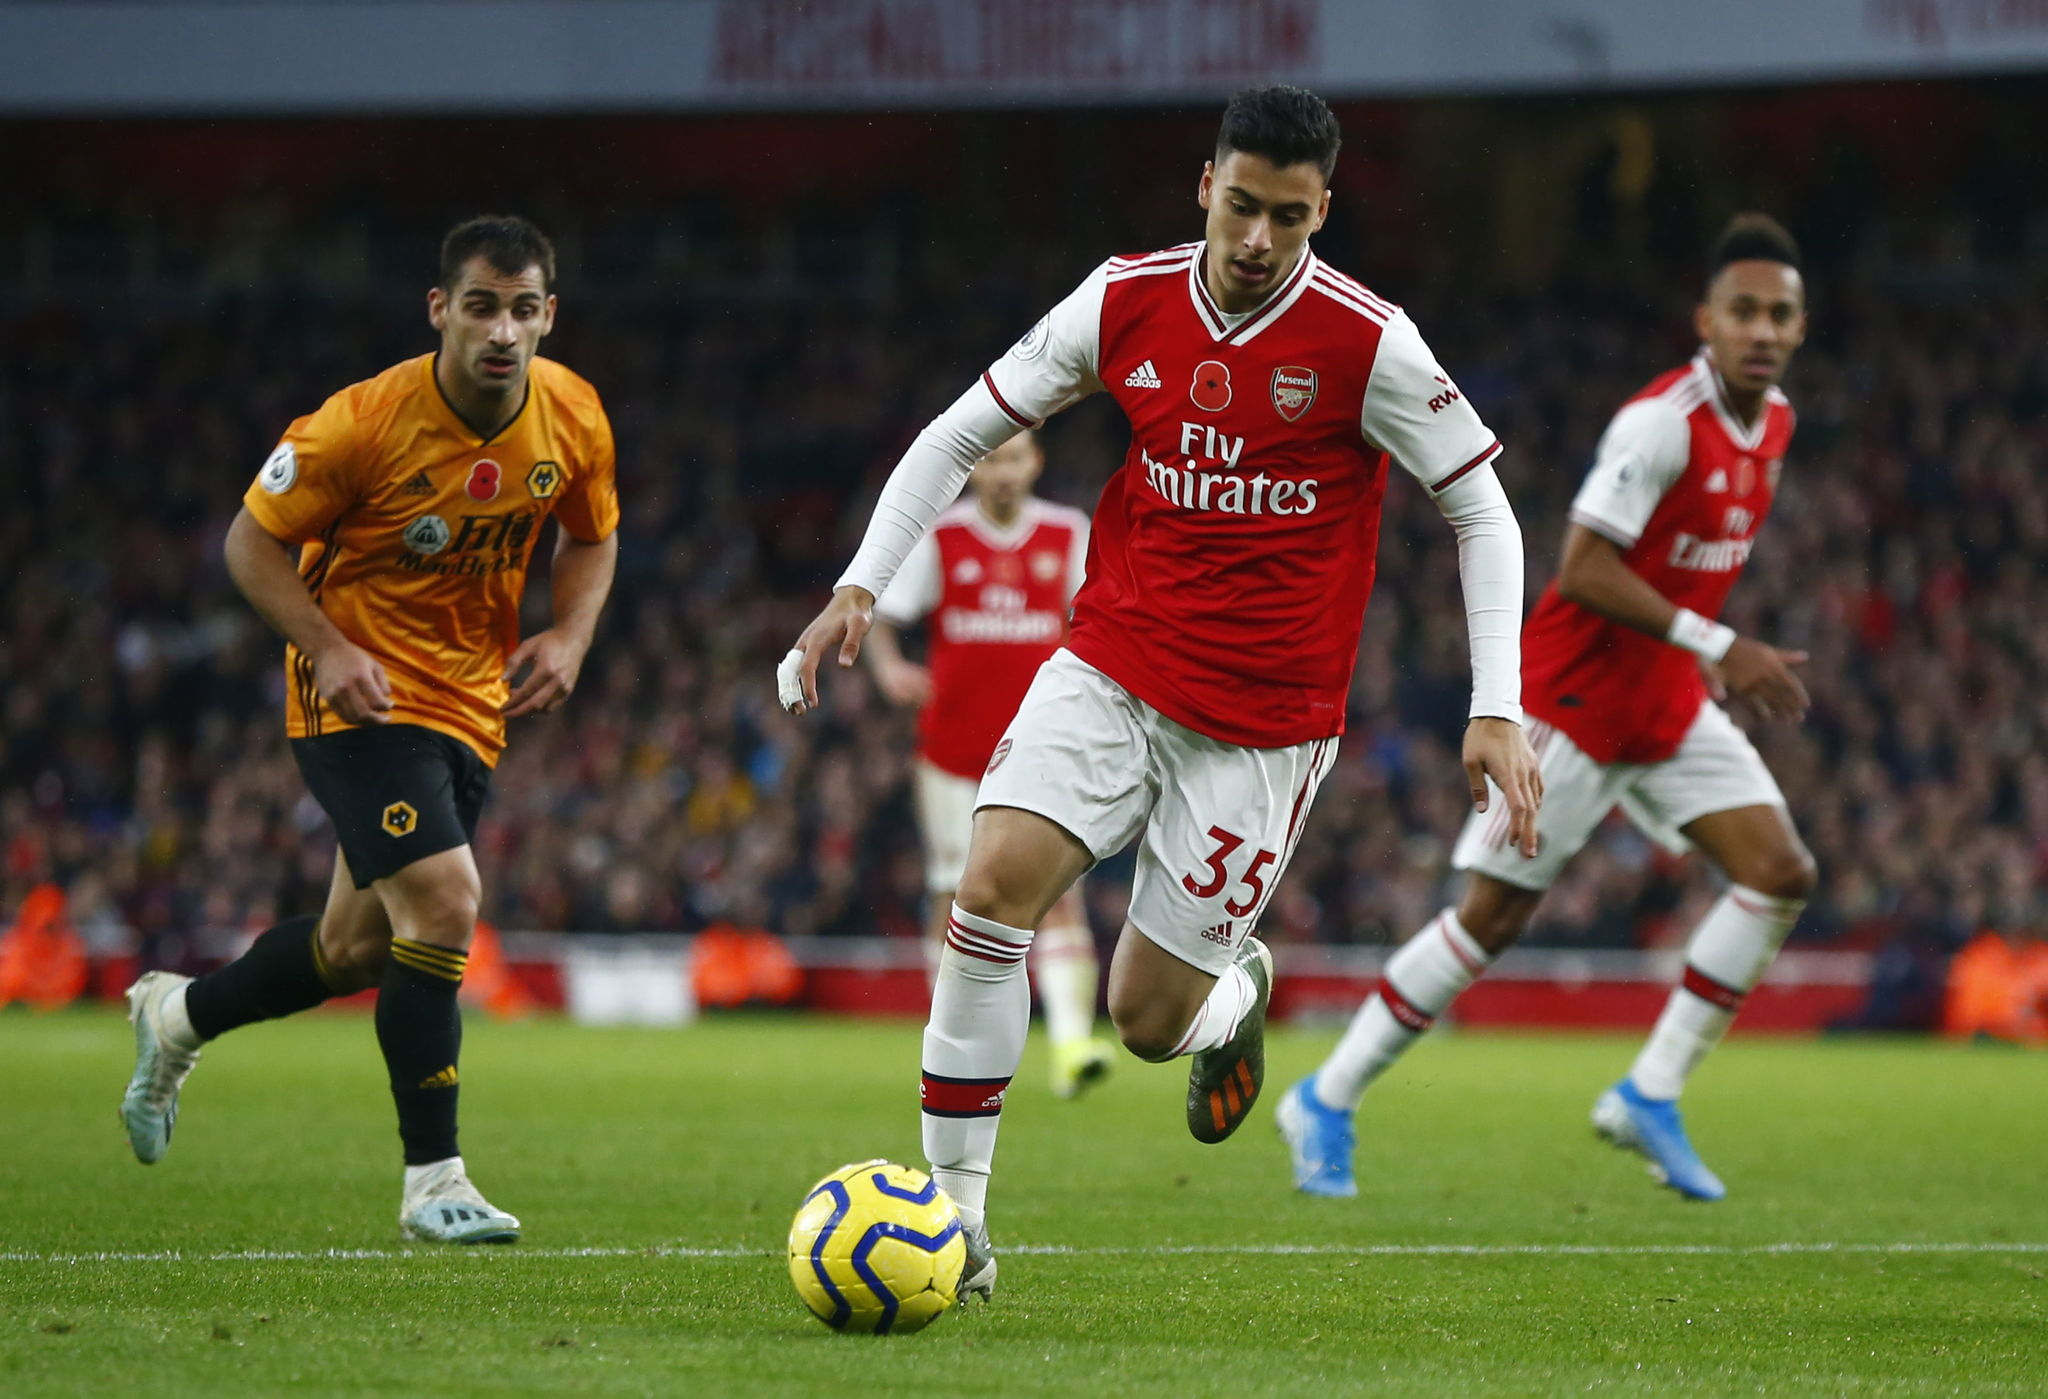 London (United Kingdom), 24/09/2018.- Gabriel <HIT>Martinelli</HIT> of Arsenal during the English Premier League soccer match between Arsenal and Wolverhampton Wanderers at the Emirates stadium in London, Britain, 02 November 2019. (Reino Unido, Londres) EFE/EPA/KIERAN GALVIN EDITORIAL USE ONLY. No use with unauthorized audio, video, data, fixture lists, club/league logos or live services. Online in-match use limited to 120 images, no video emulation. No use in betting, games or single club/league/player publications